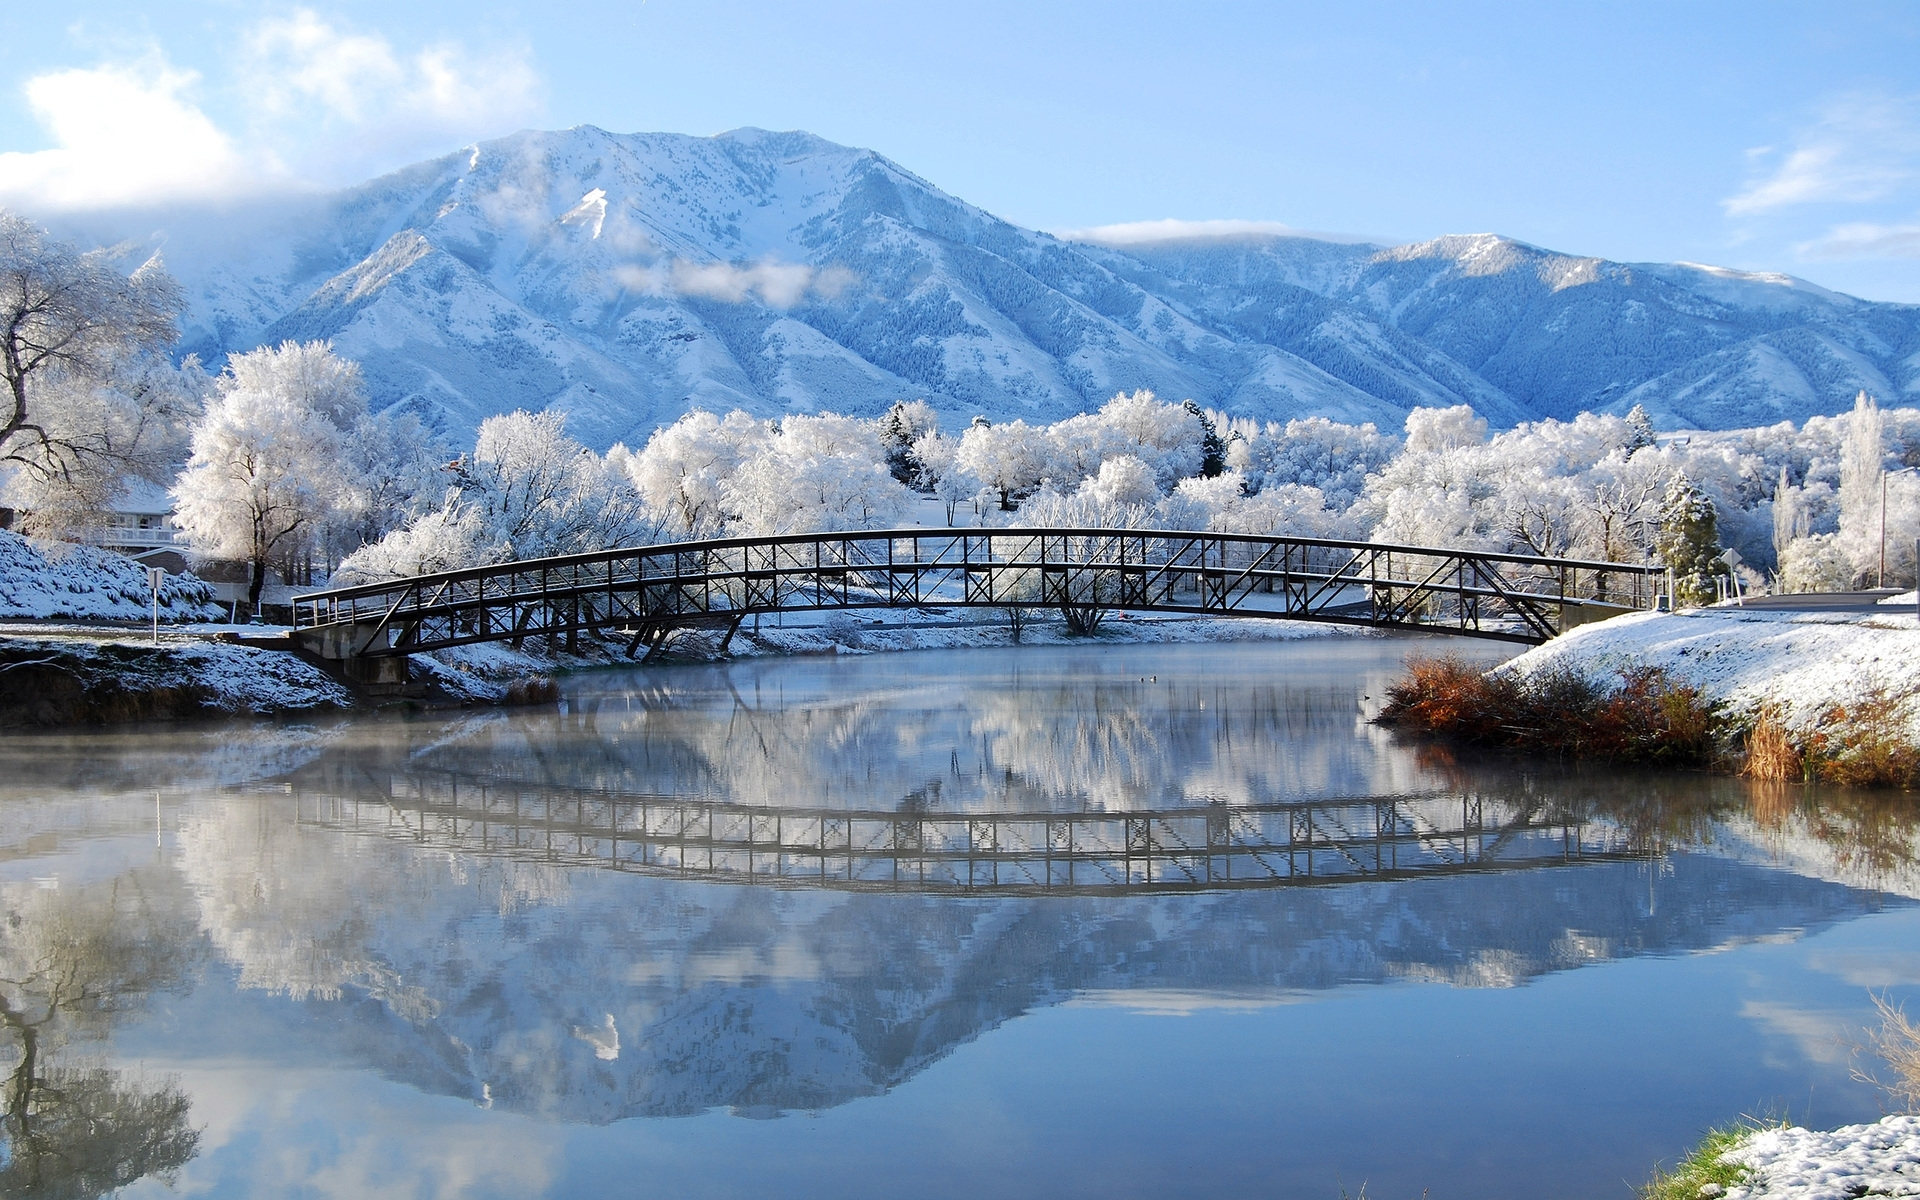 45055 download wallpaper Landscape, Winter, Nature screensavers and pictures for free